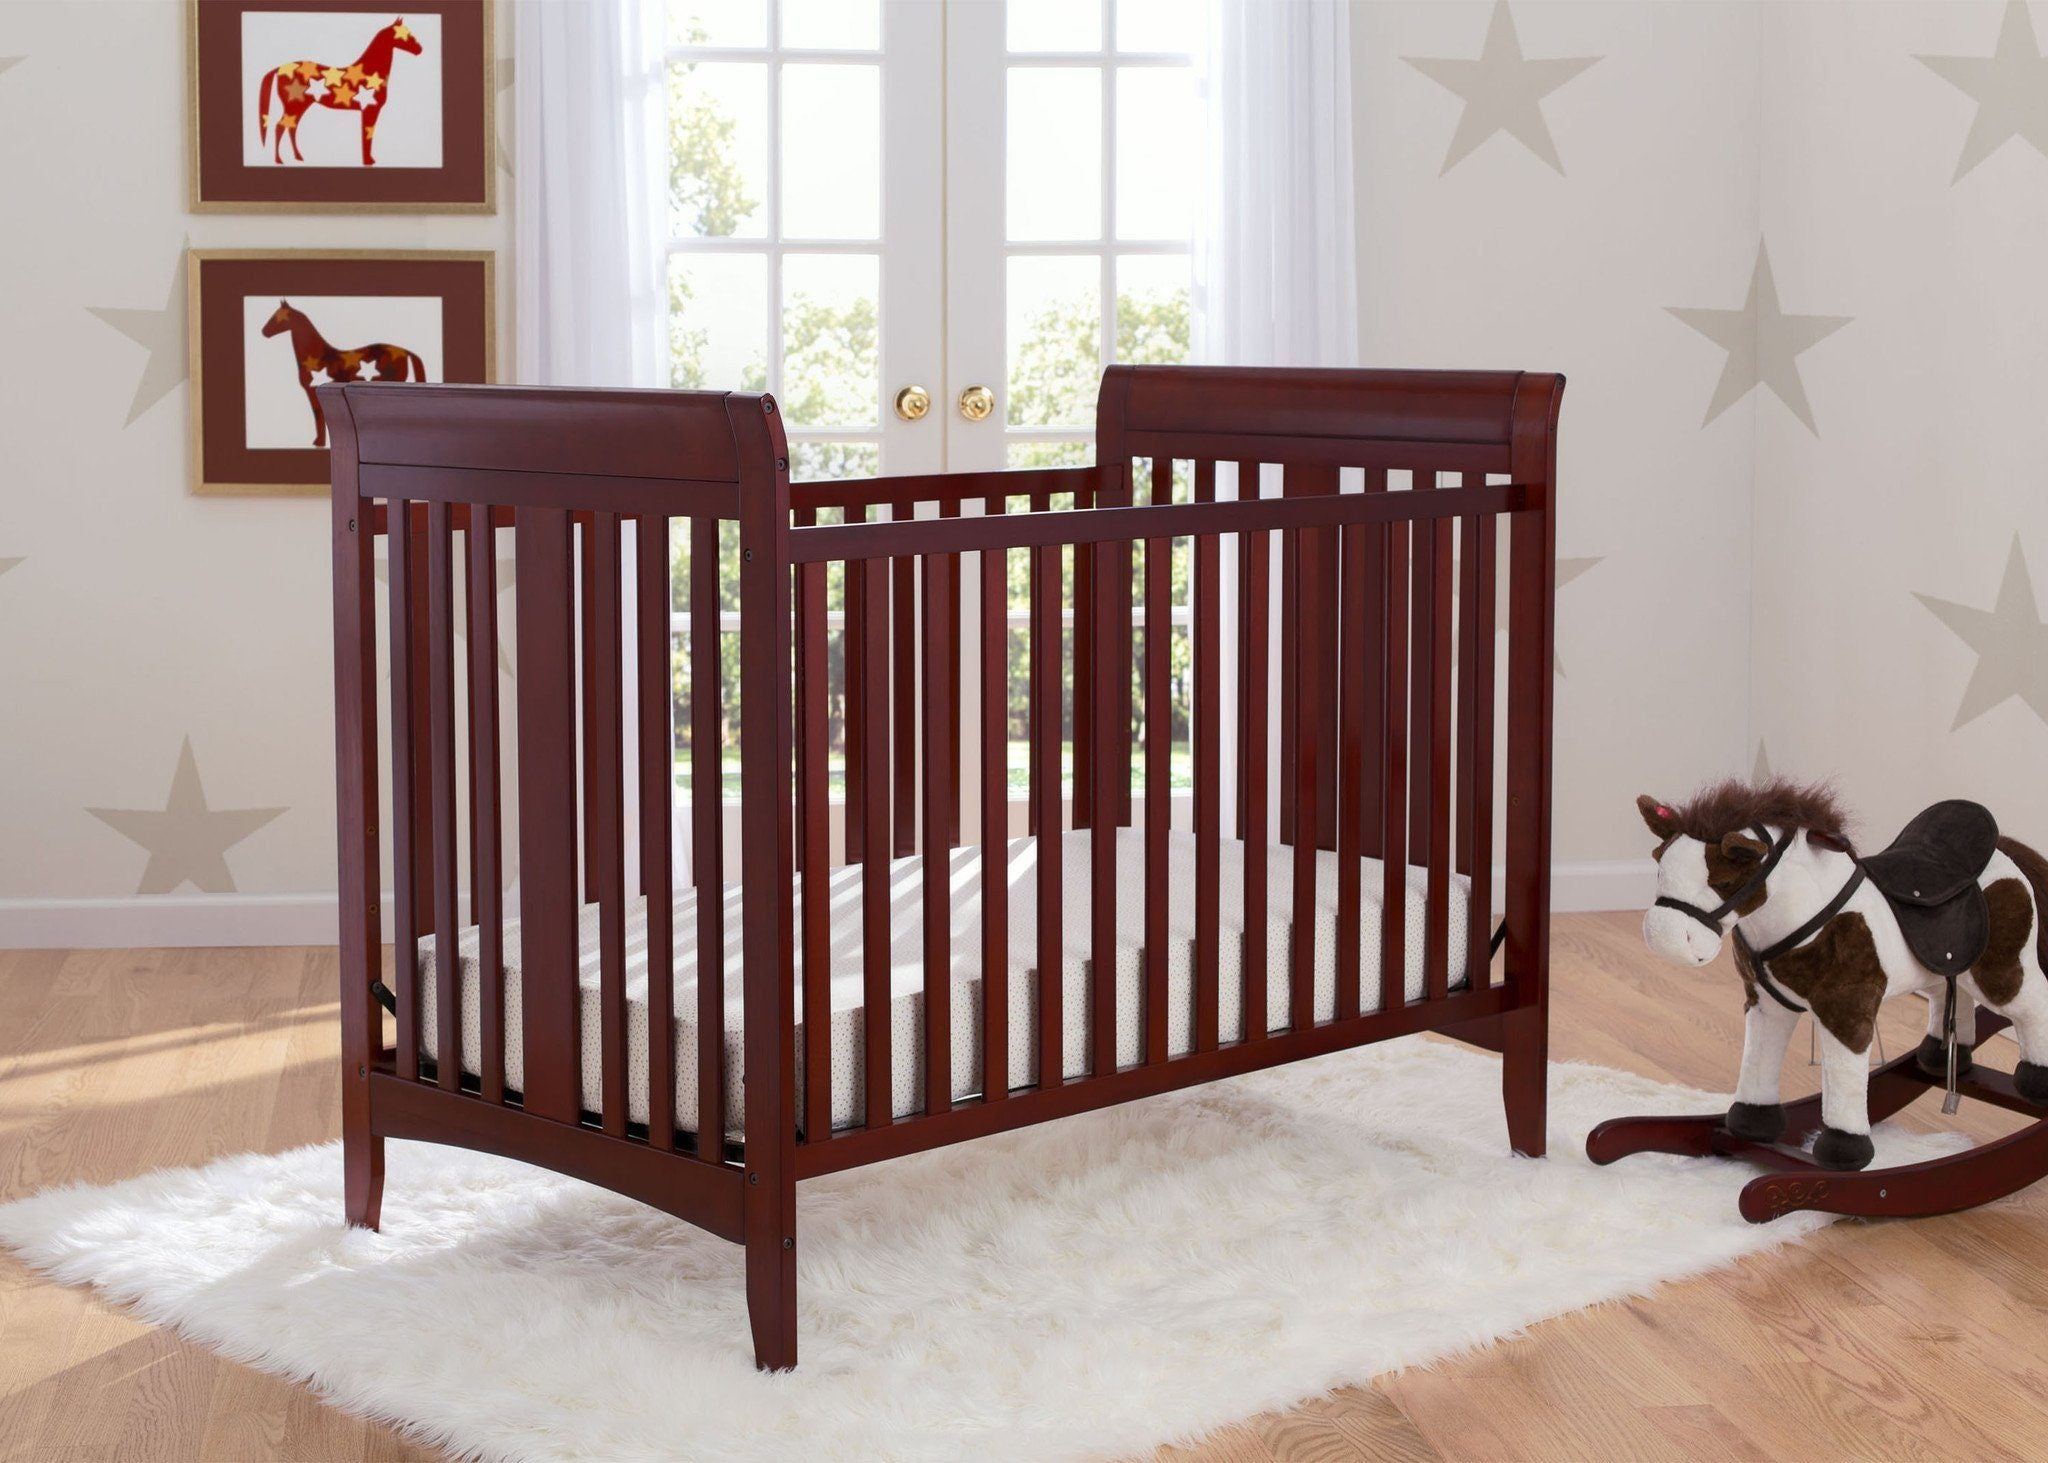 Delta Children Cabernet (648) Parkside 3-in-1-Crib, room shot c0c